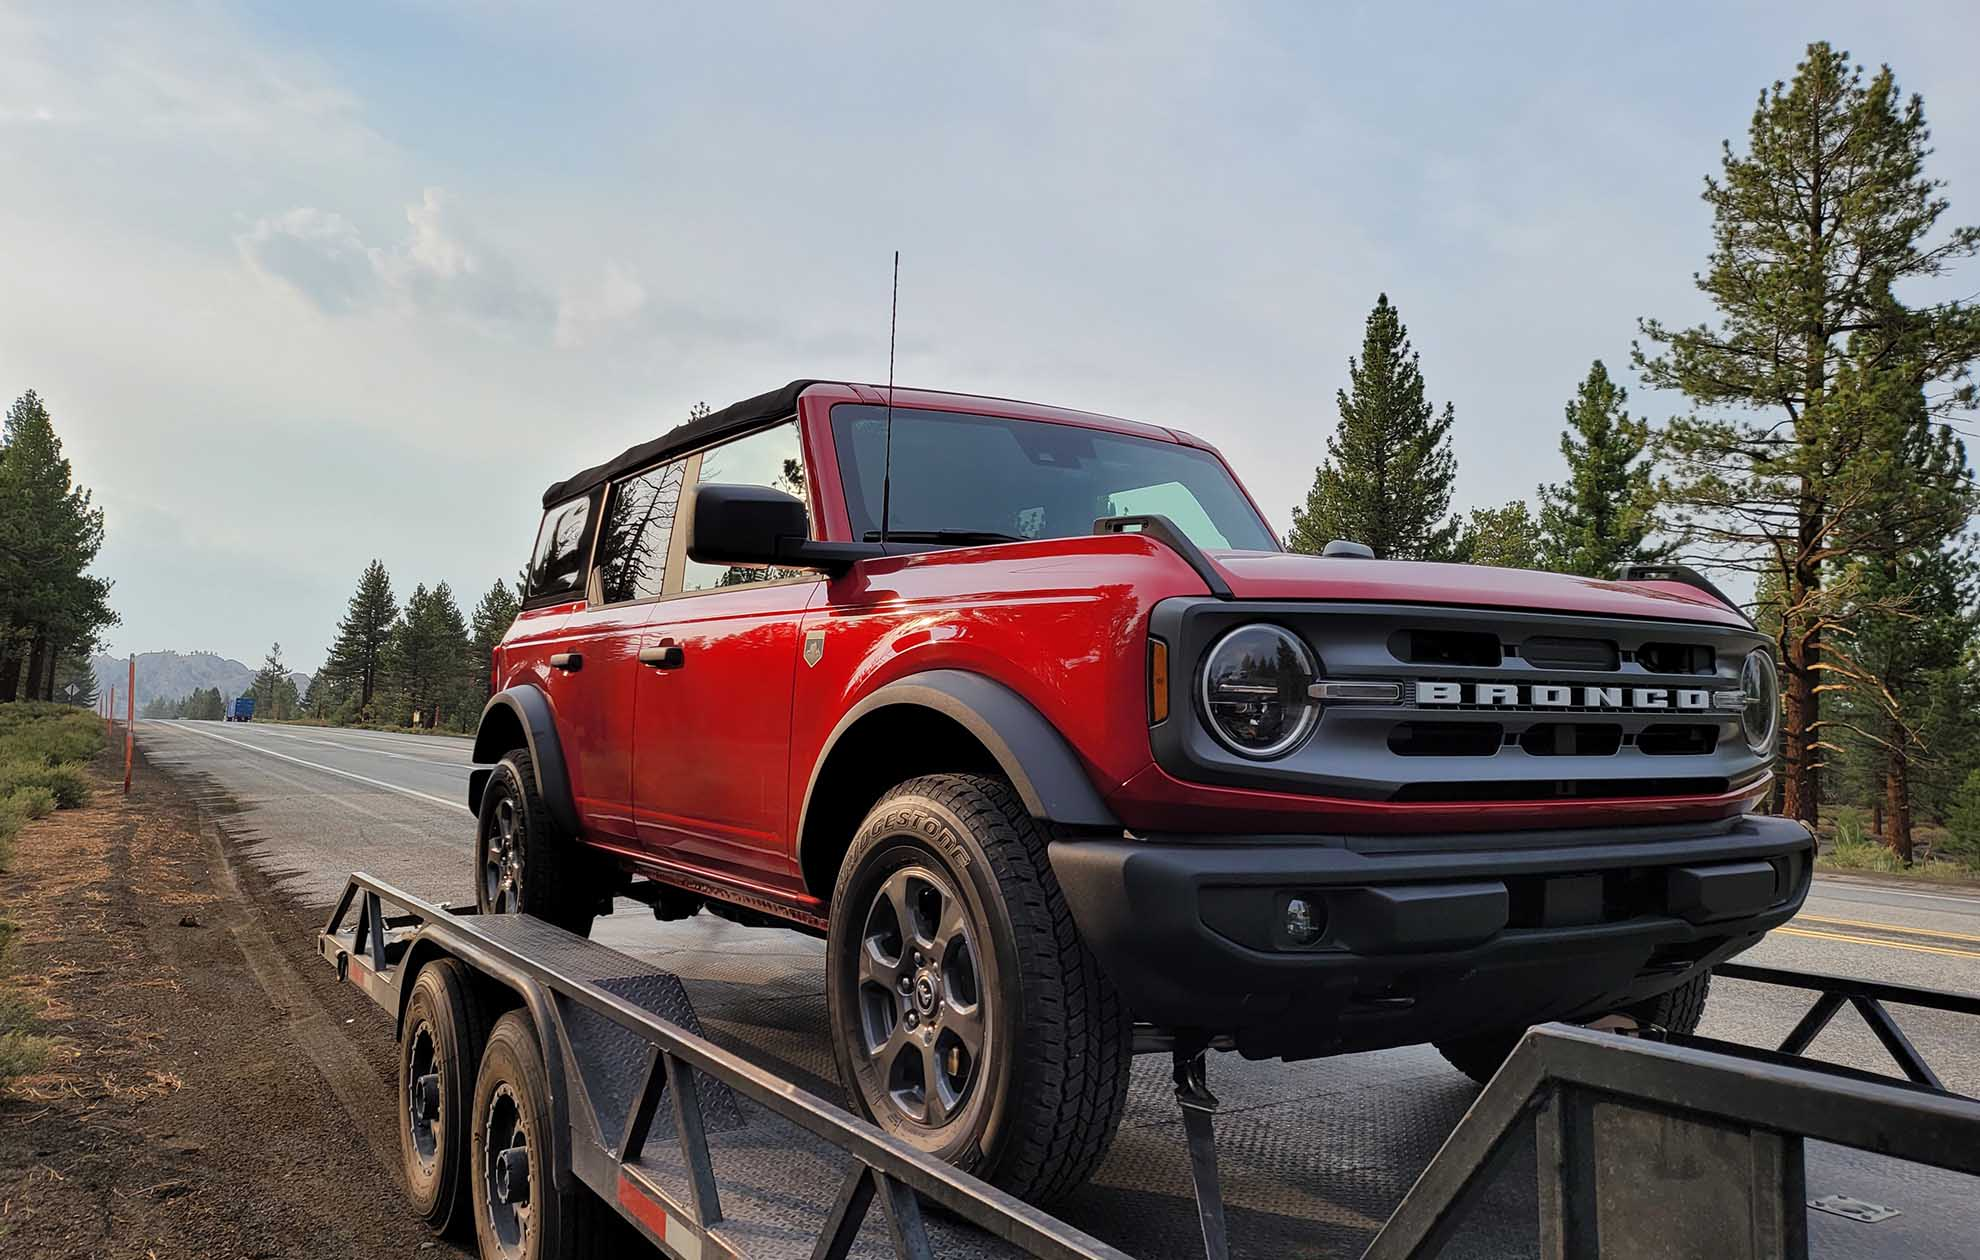 2021 ford bronco ready for aftermarket off road parts at svc offroad